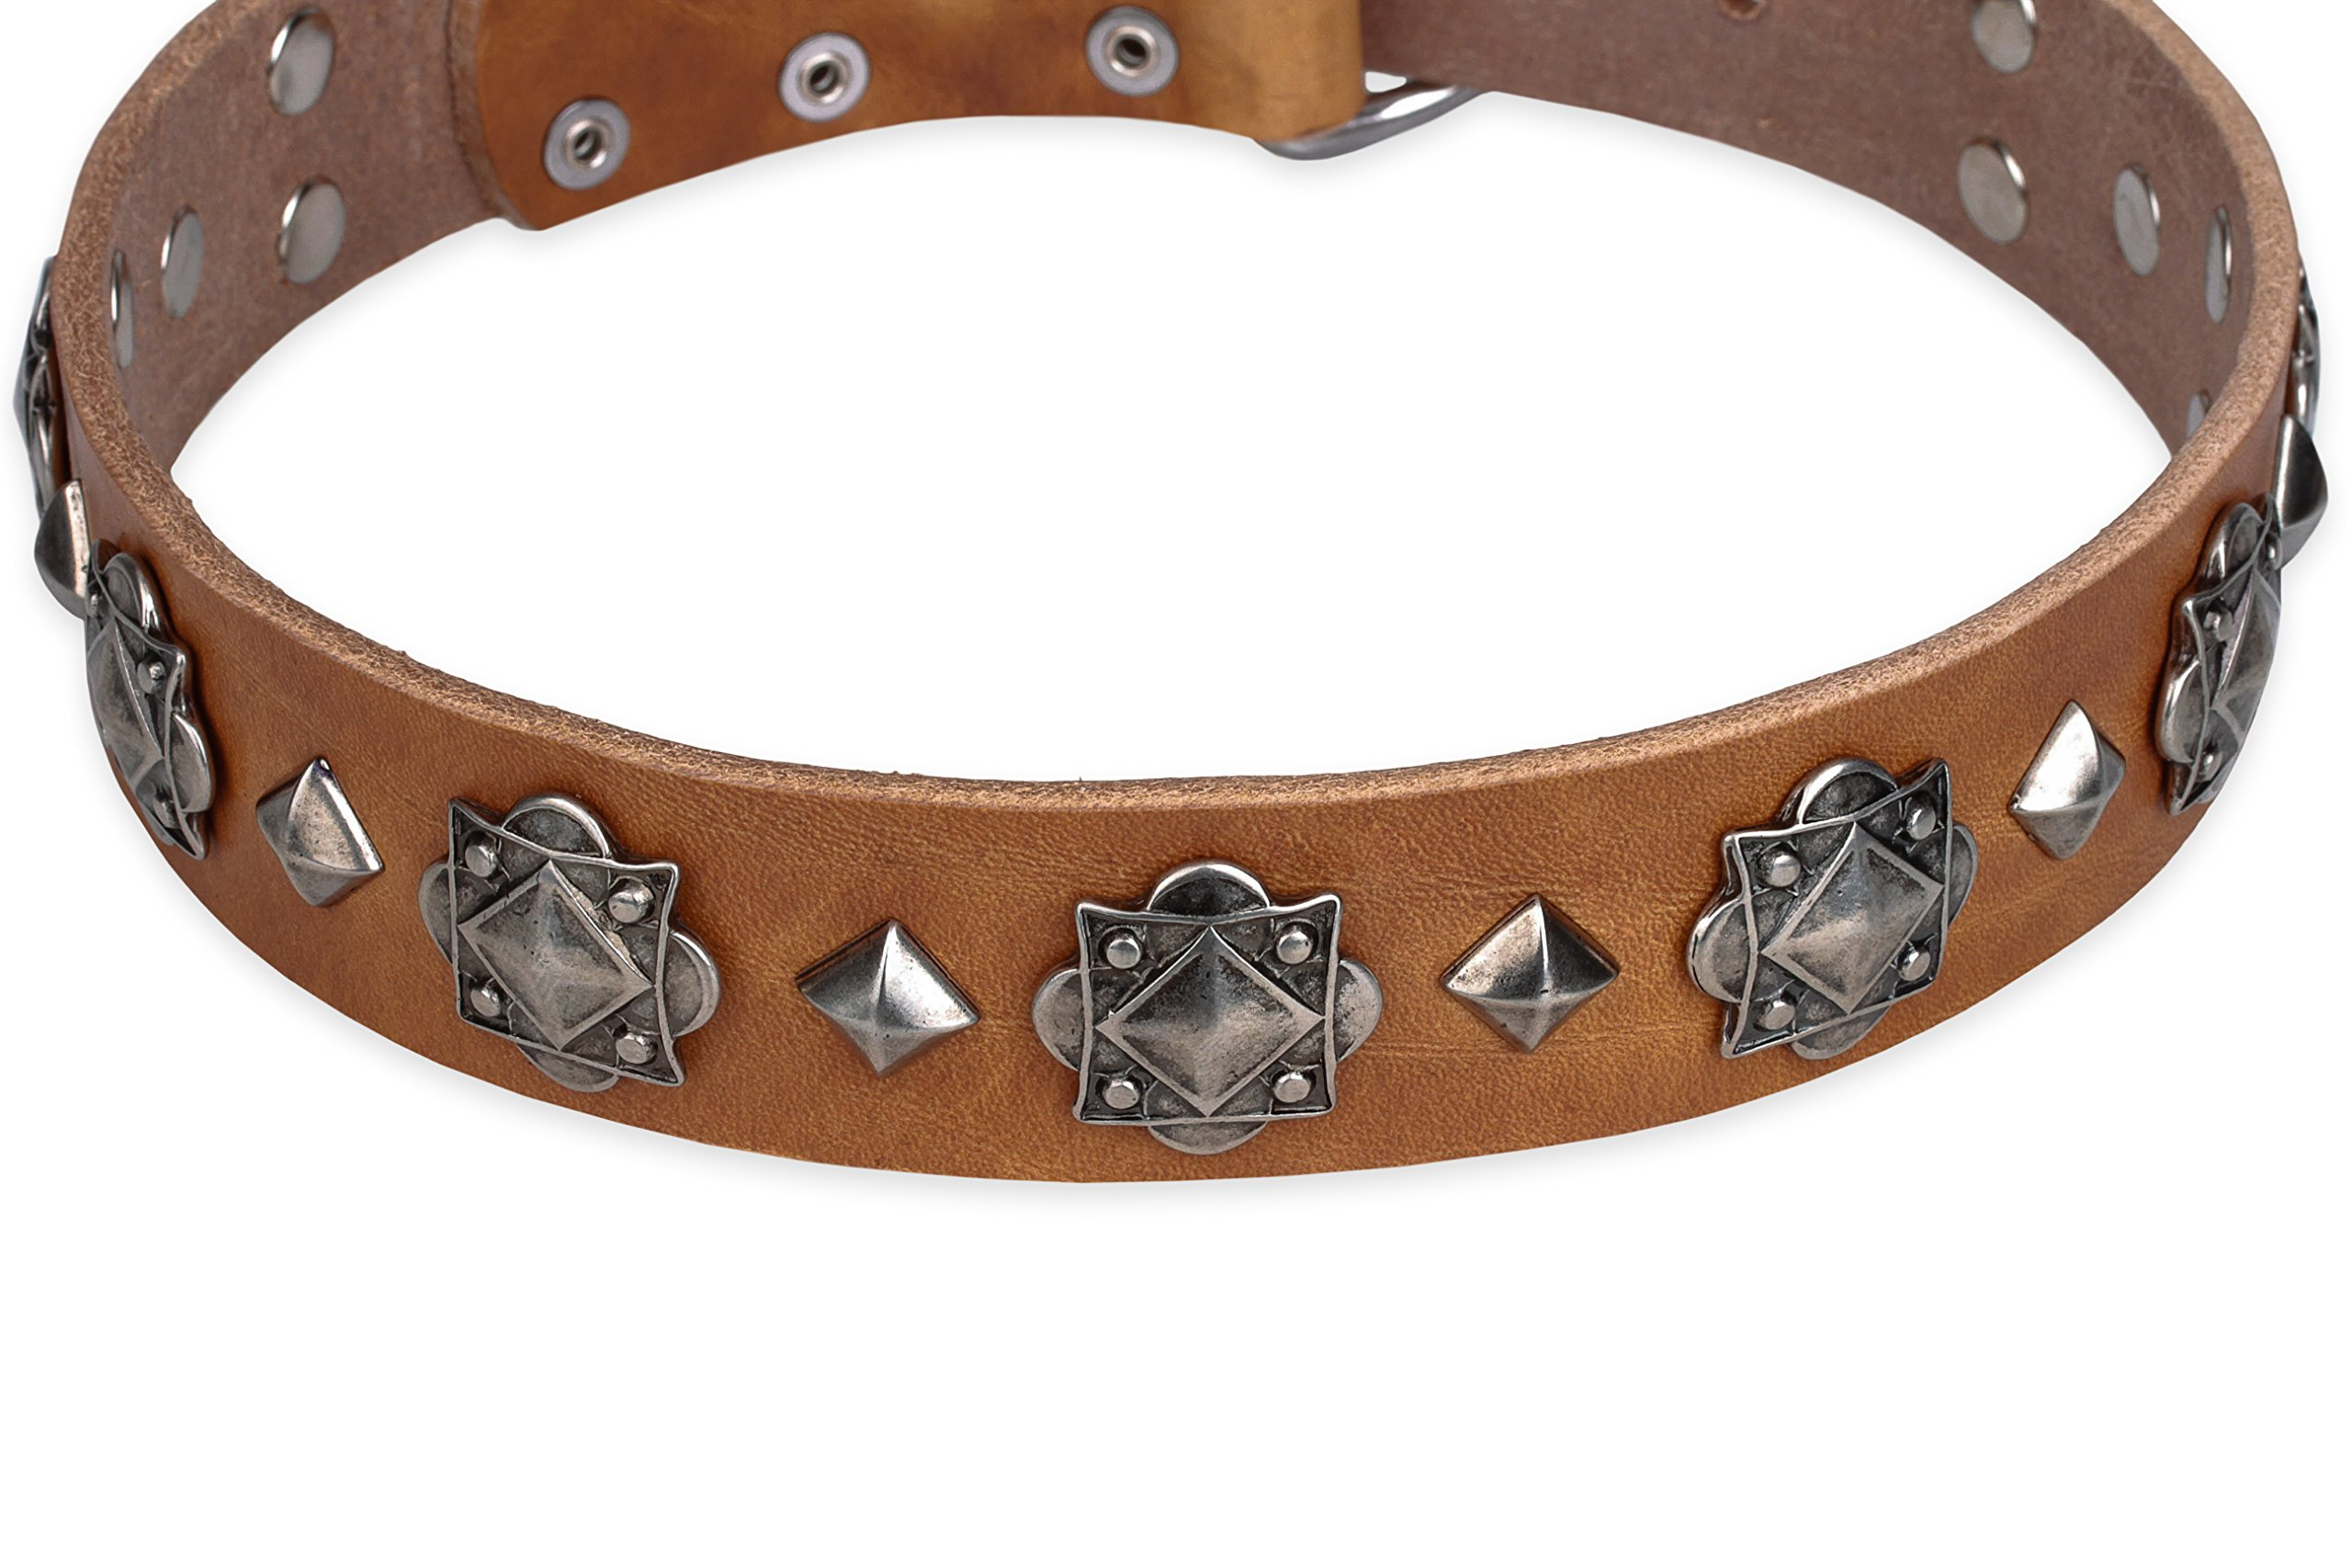 FDT Artisan 19 inch 'Code of Chivalry Embellished Tan Leather Dog Collar - 1 1/2 inch (40 mm)